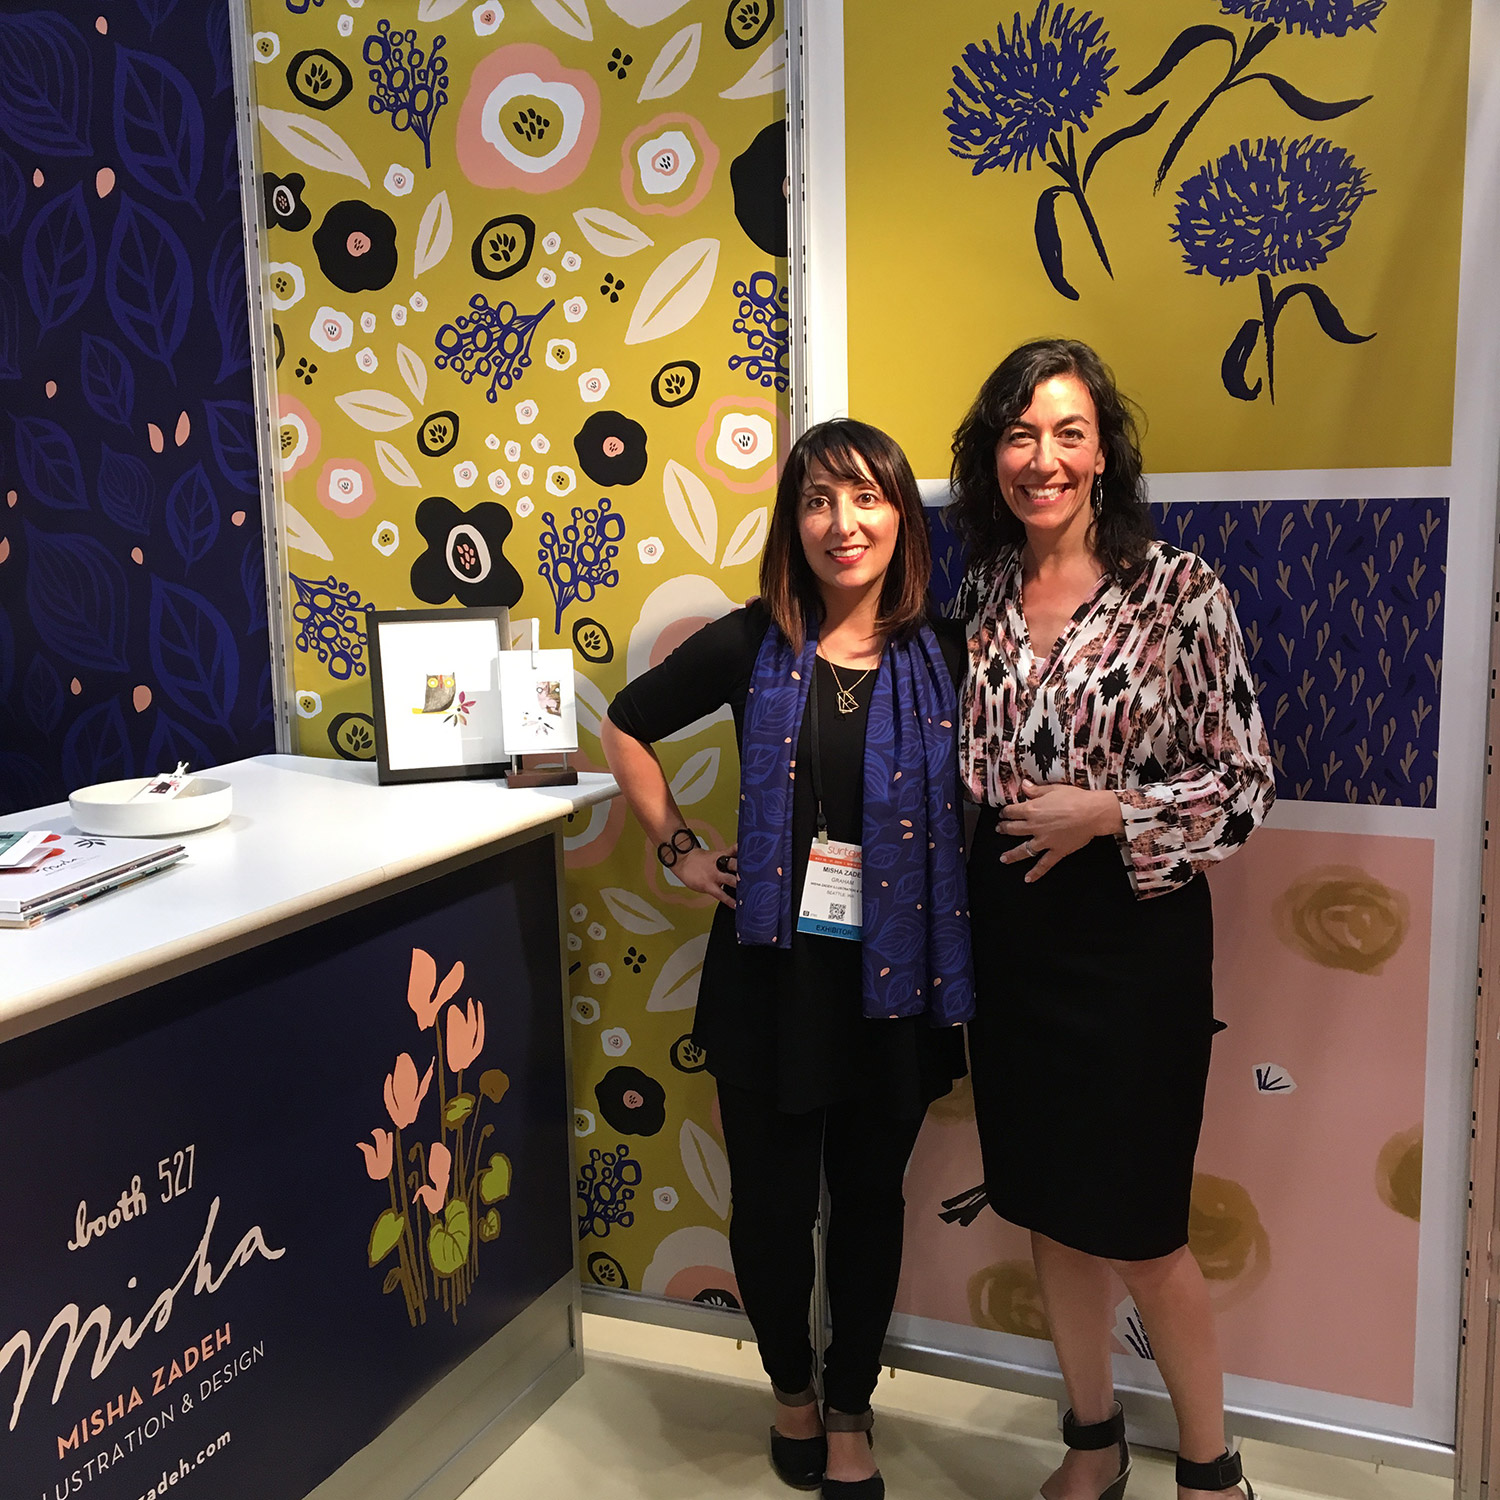 Misha Zadeh: SURTEX 2016: Booth 527: Misha and Claudia